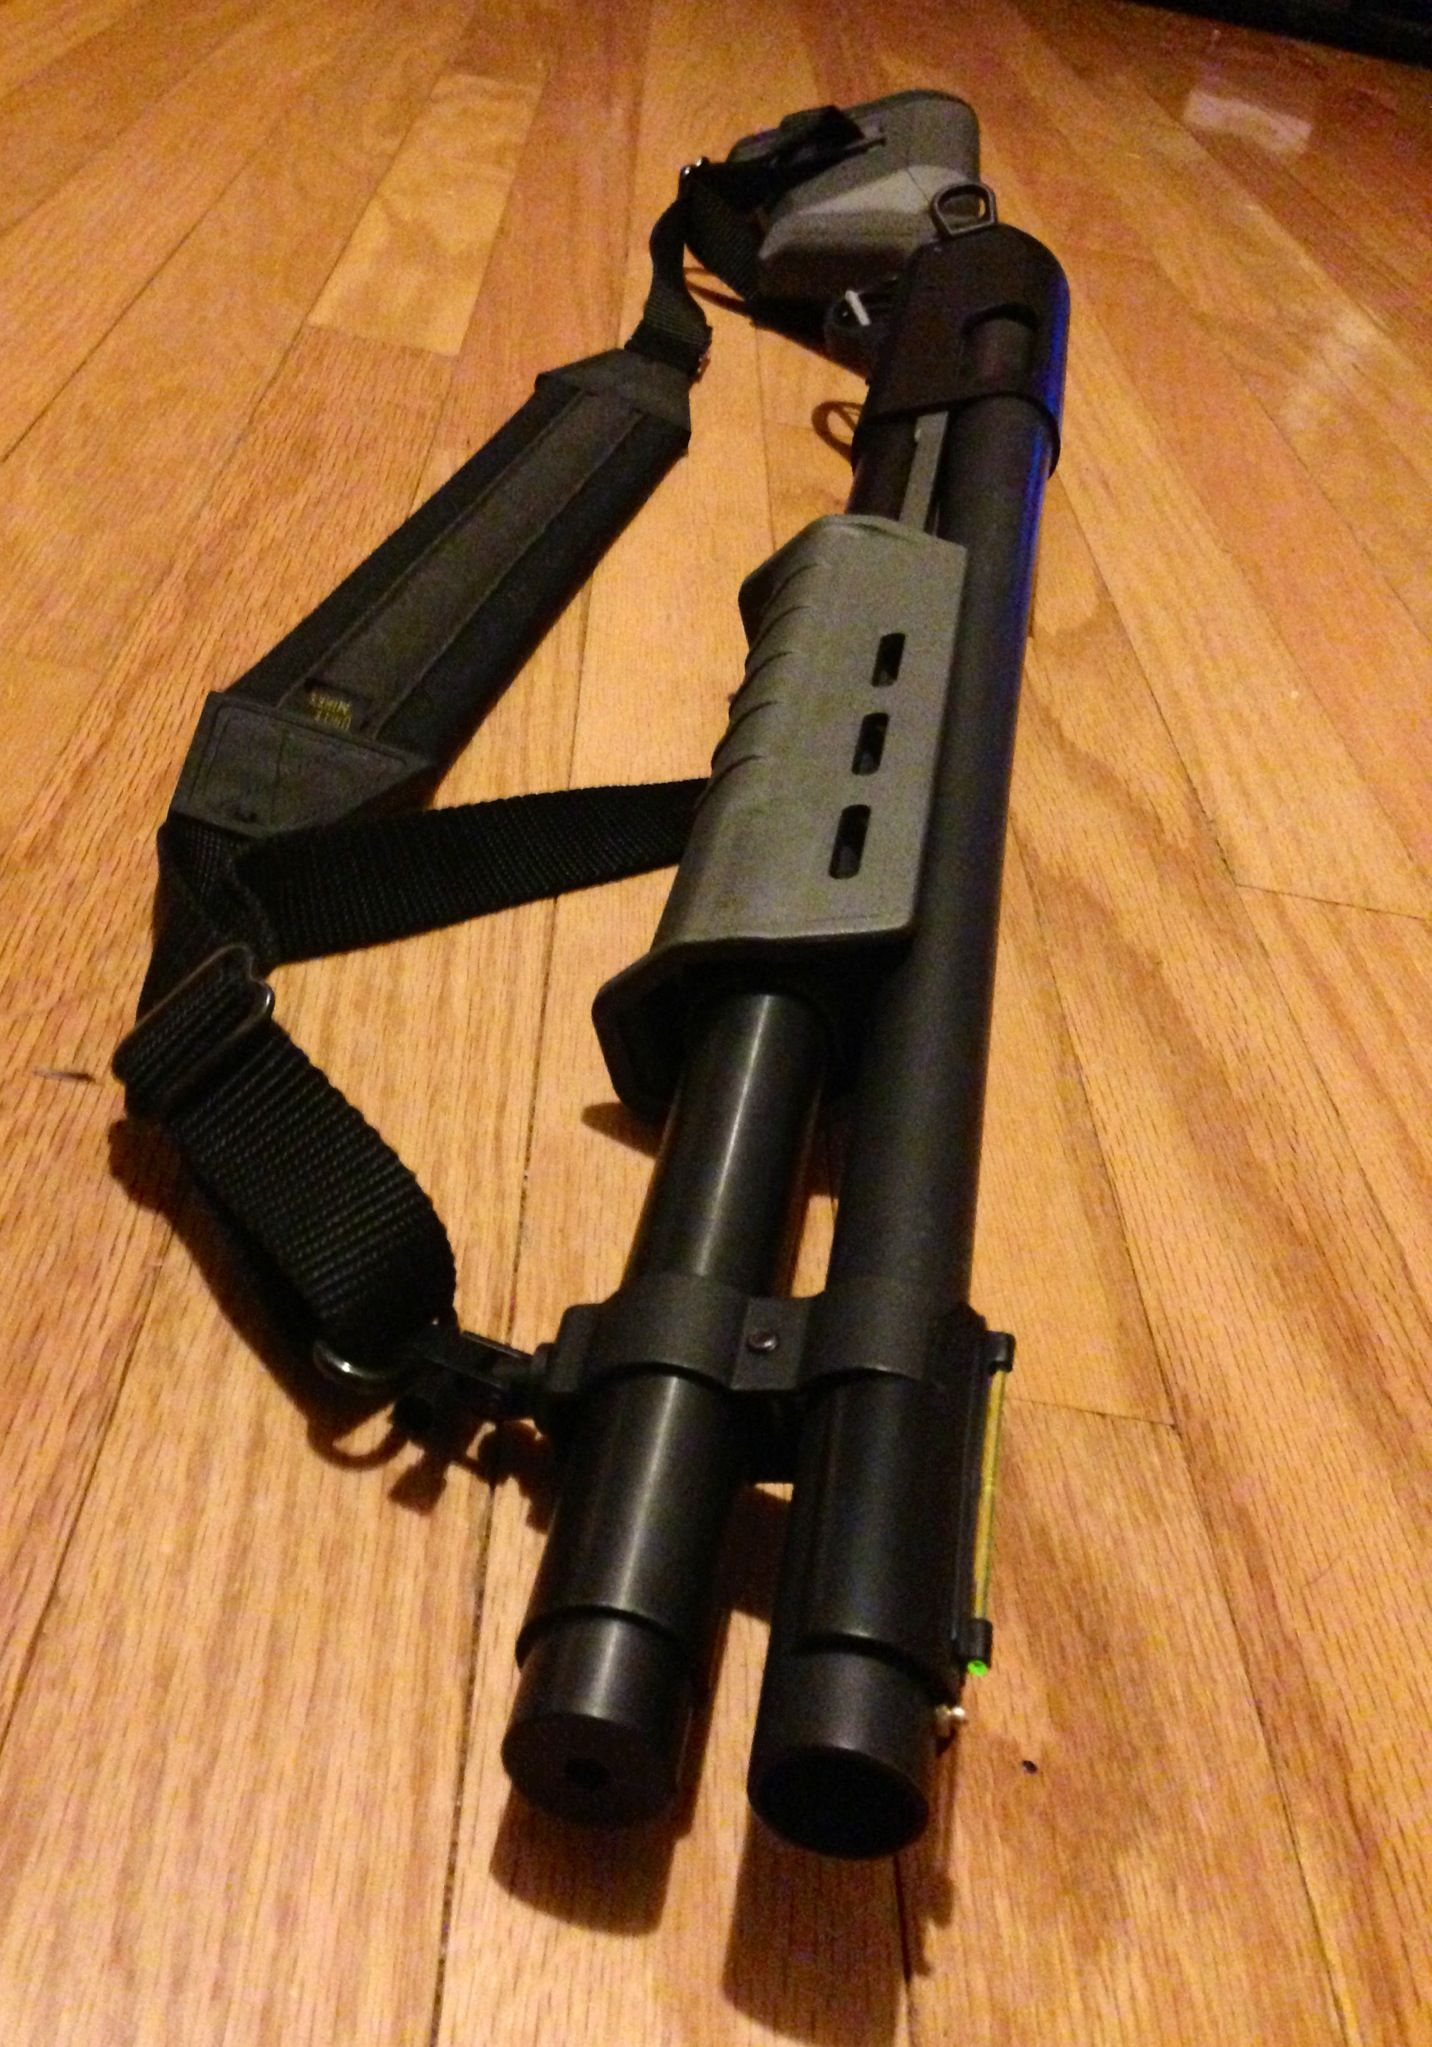 Awesome Remington express magnum cerakoted bat grey and graphite black with magpul furniture